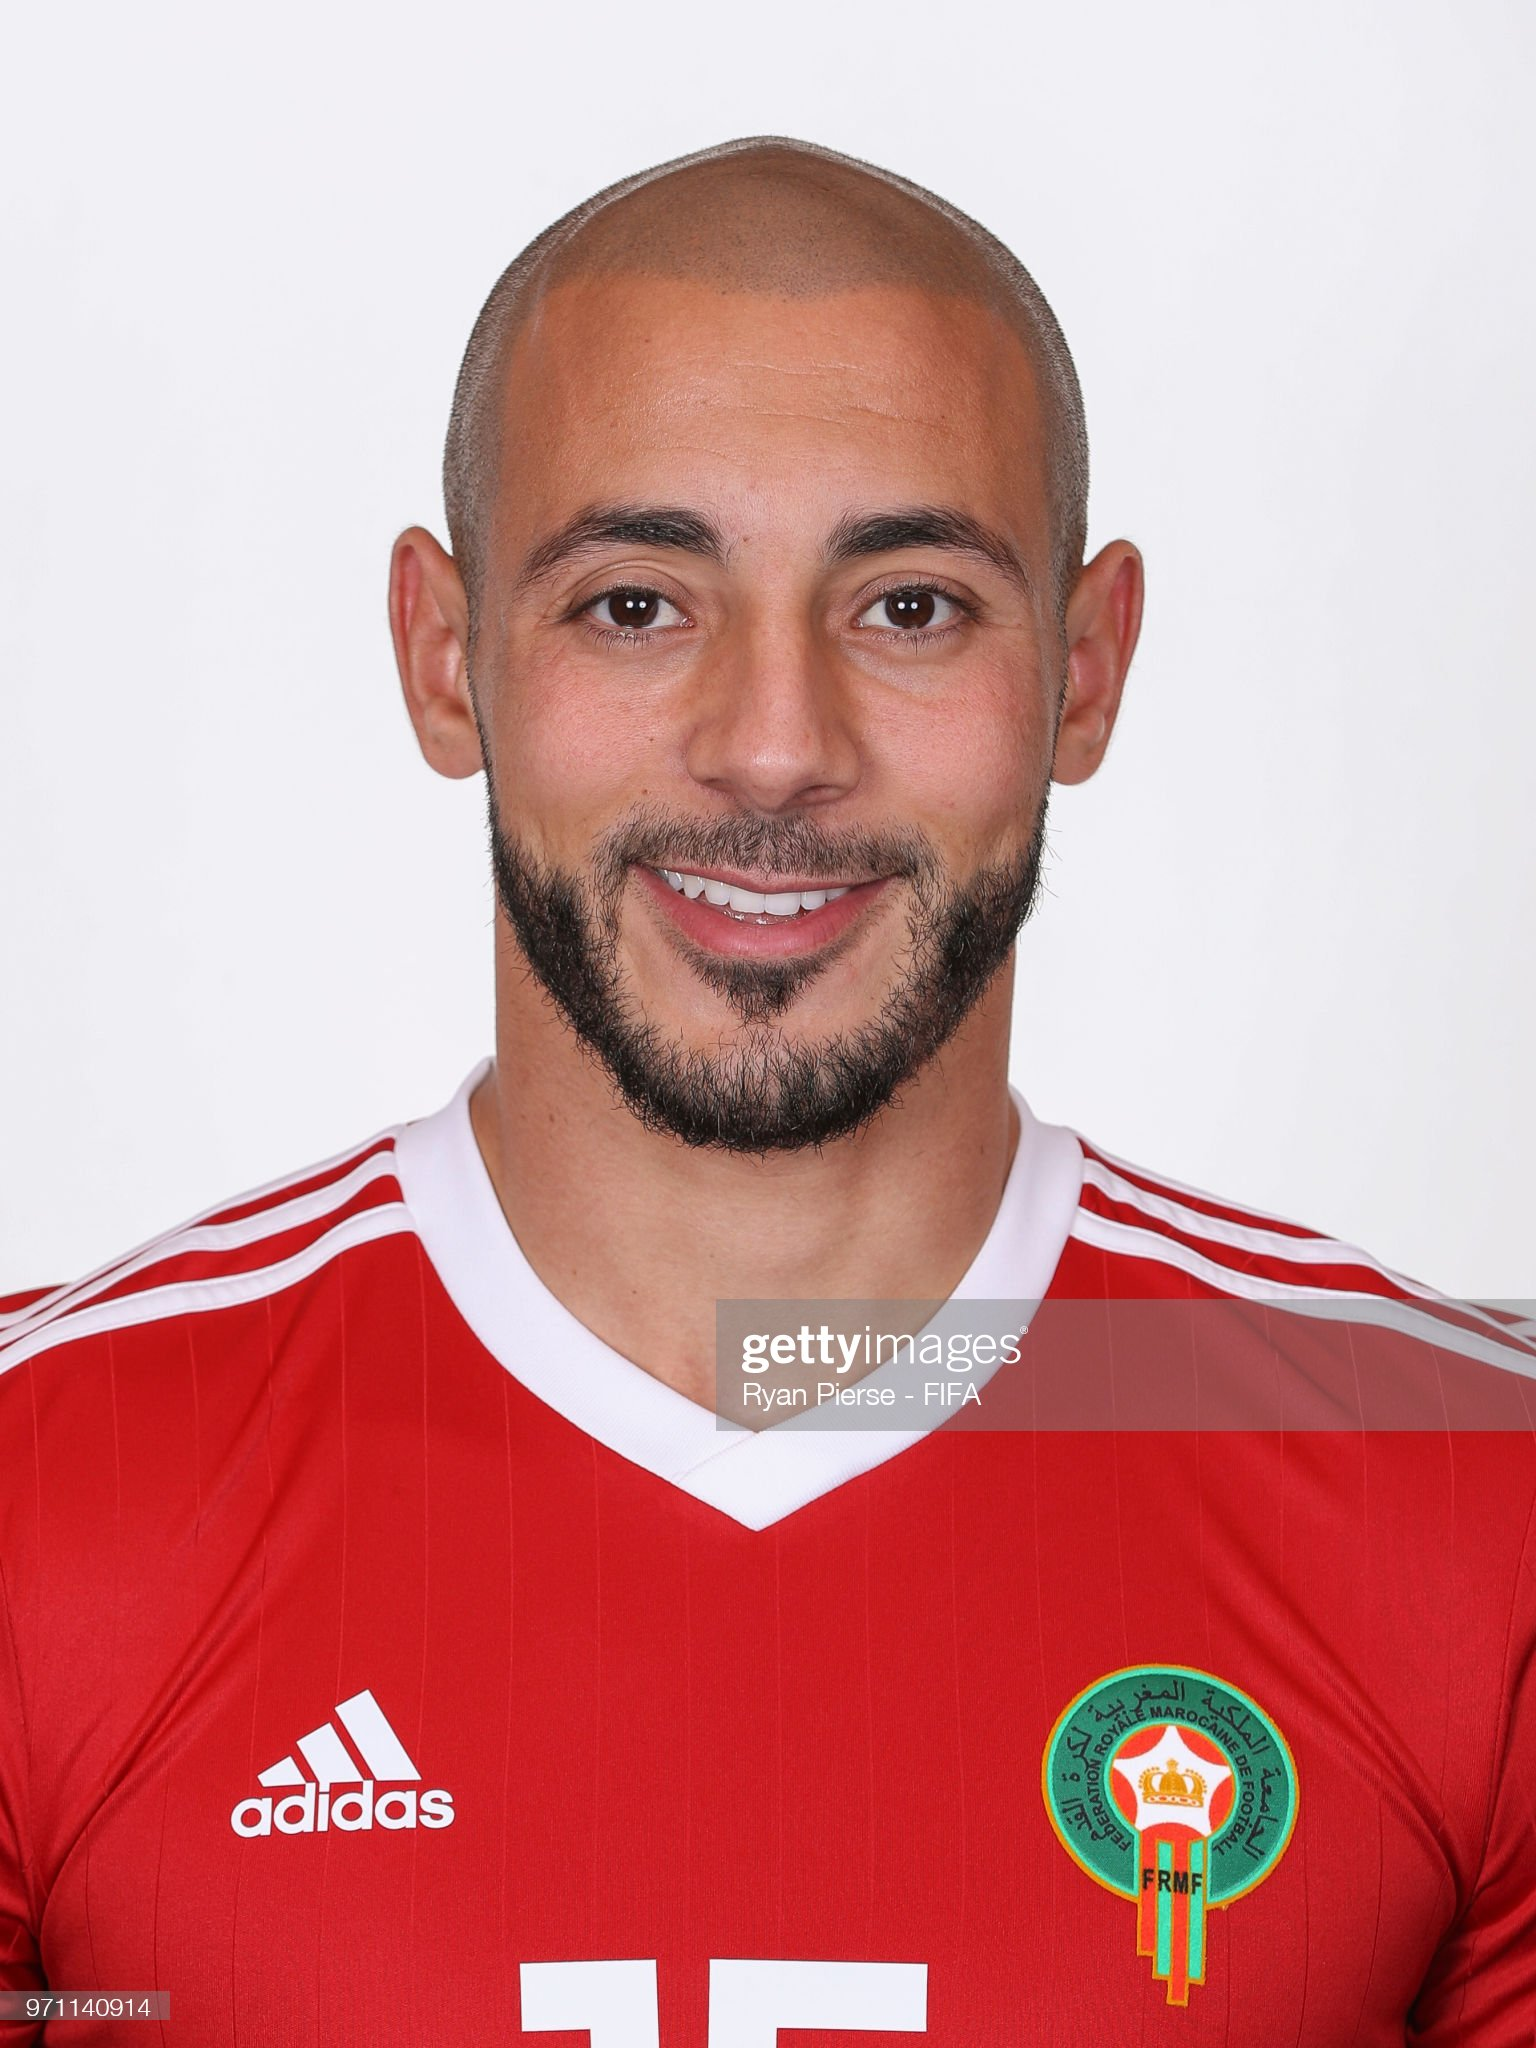 Norteafricanos Noureddine-amrabat-of-morocco-poses-during-the-official-fifa-world-picture-id971140914?s=2048x2048